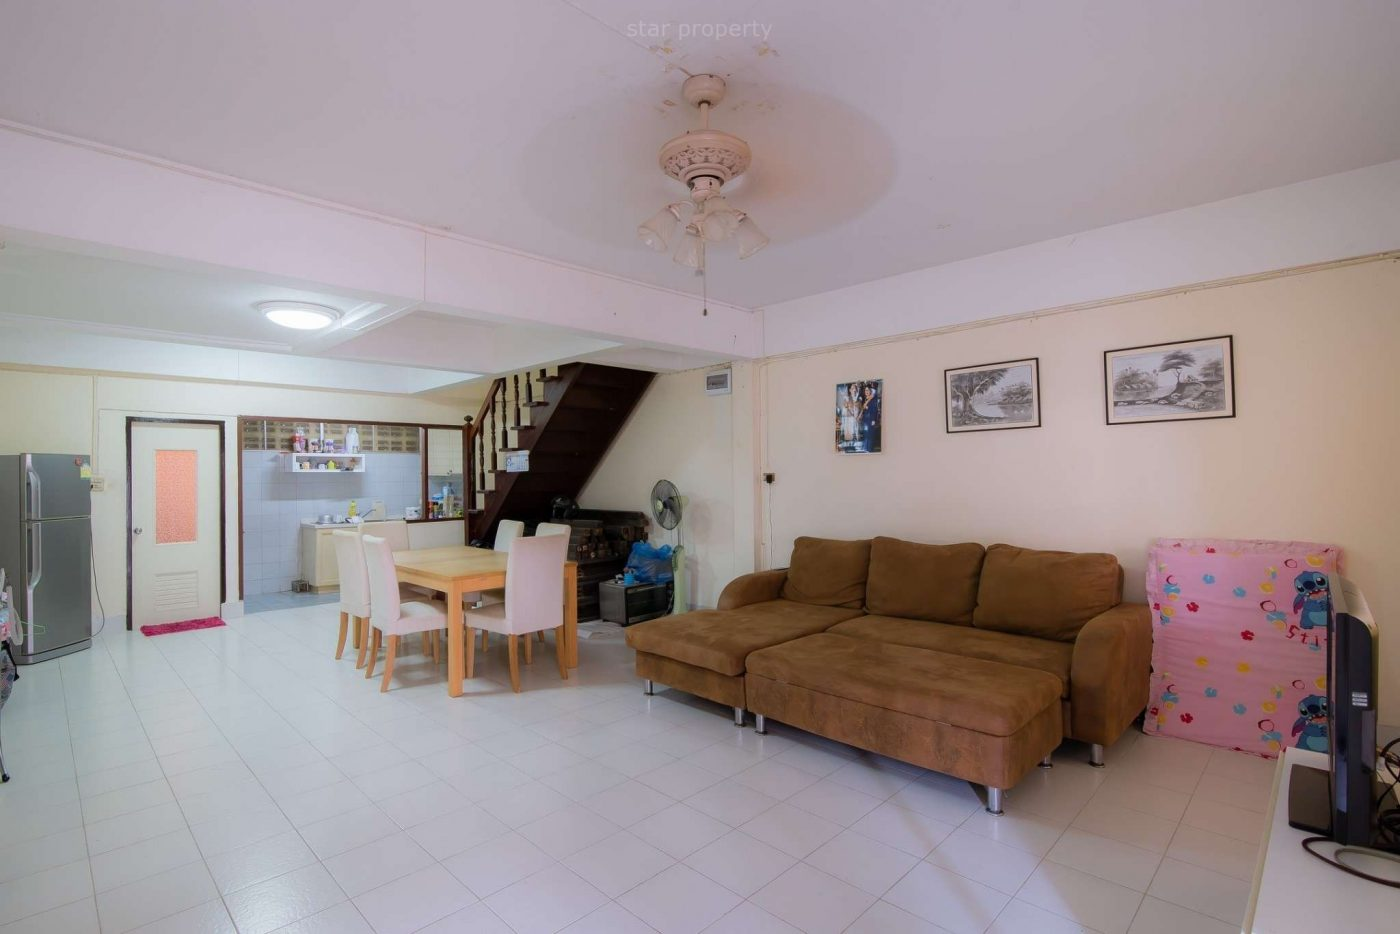 2 bedroom townhouse in Hua Hin center for rent